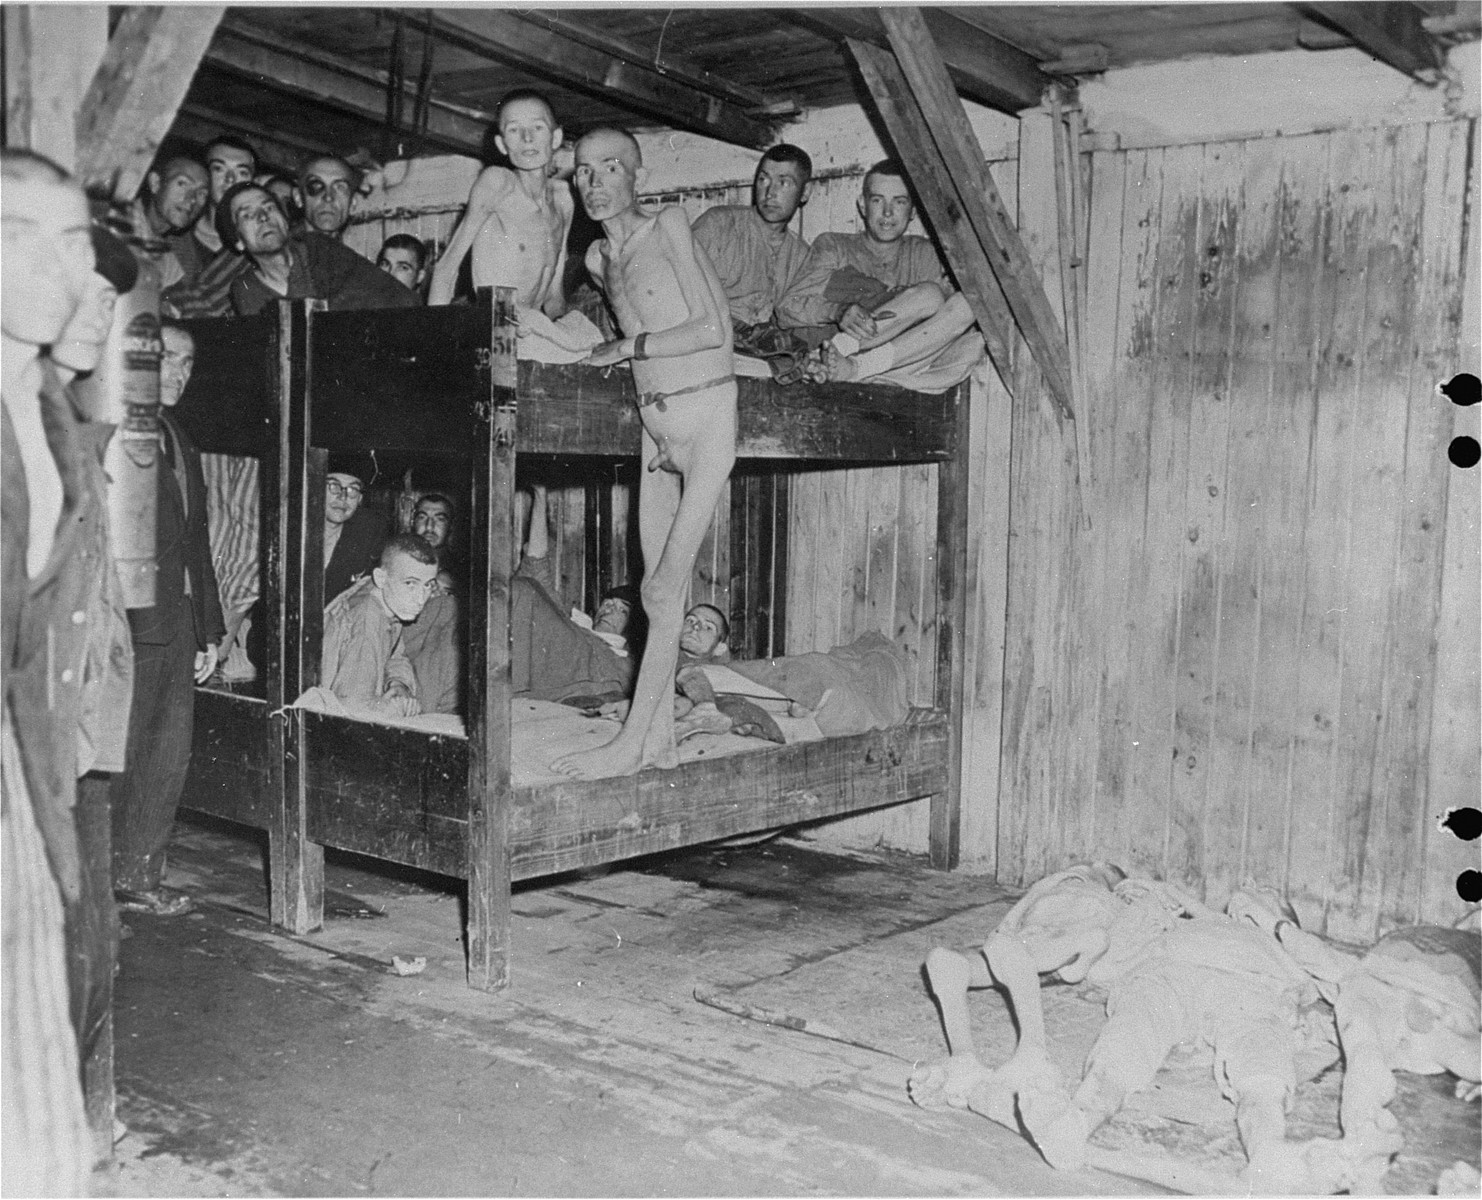 Survivors of the Mauthausen concentration camp pose inside a barracks after liberation.  The bodies of dead prisoners have been piled in the open area to the left.